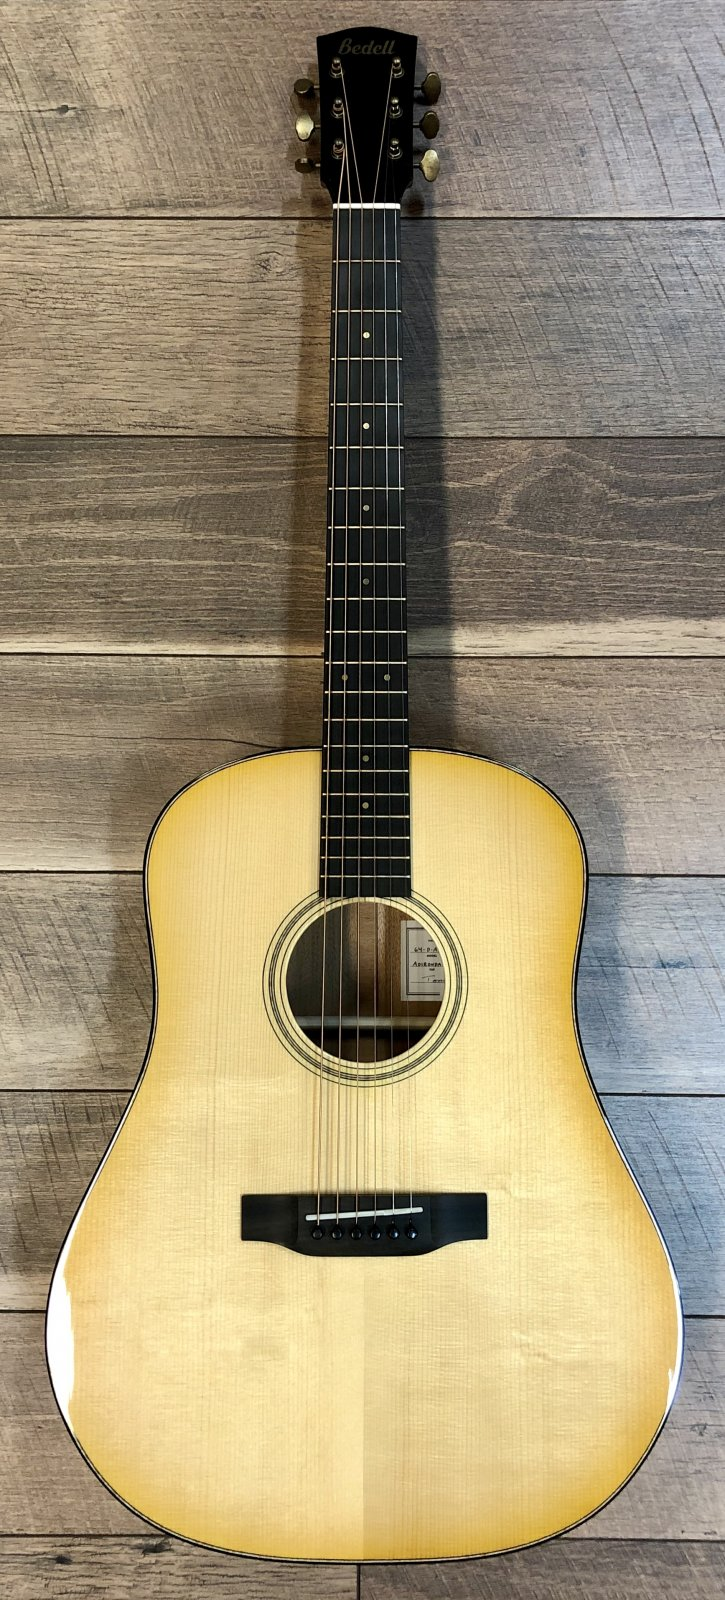 Bedell 64-D-AD/HM 1964 Special Edition Dreadnought Acoustic Guitar